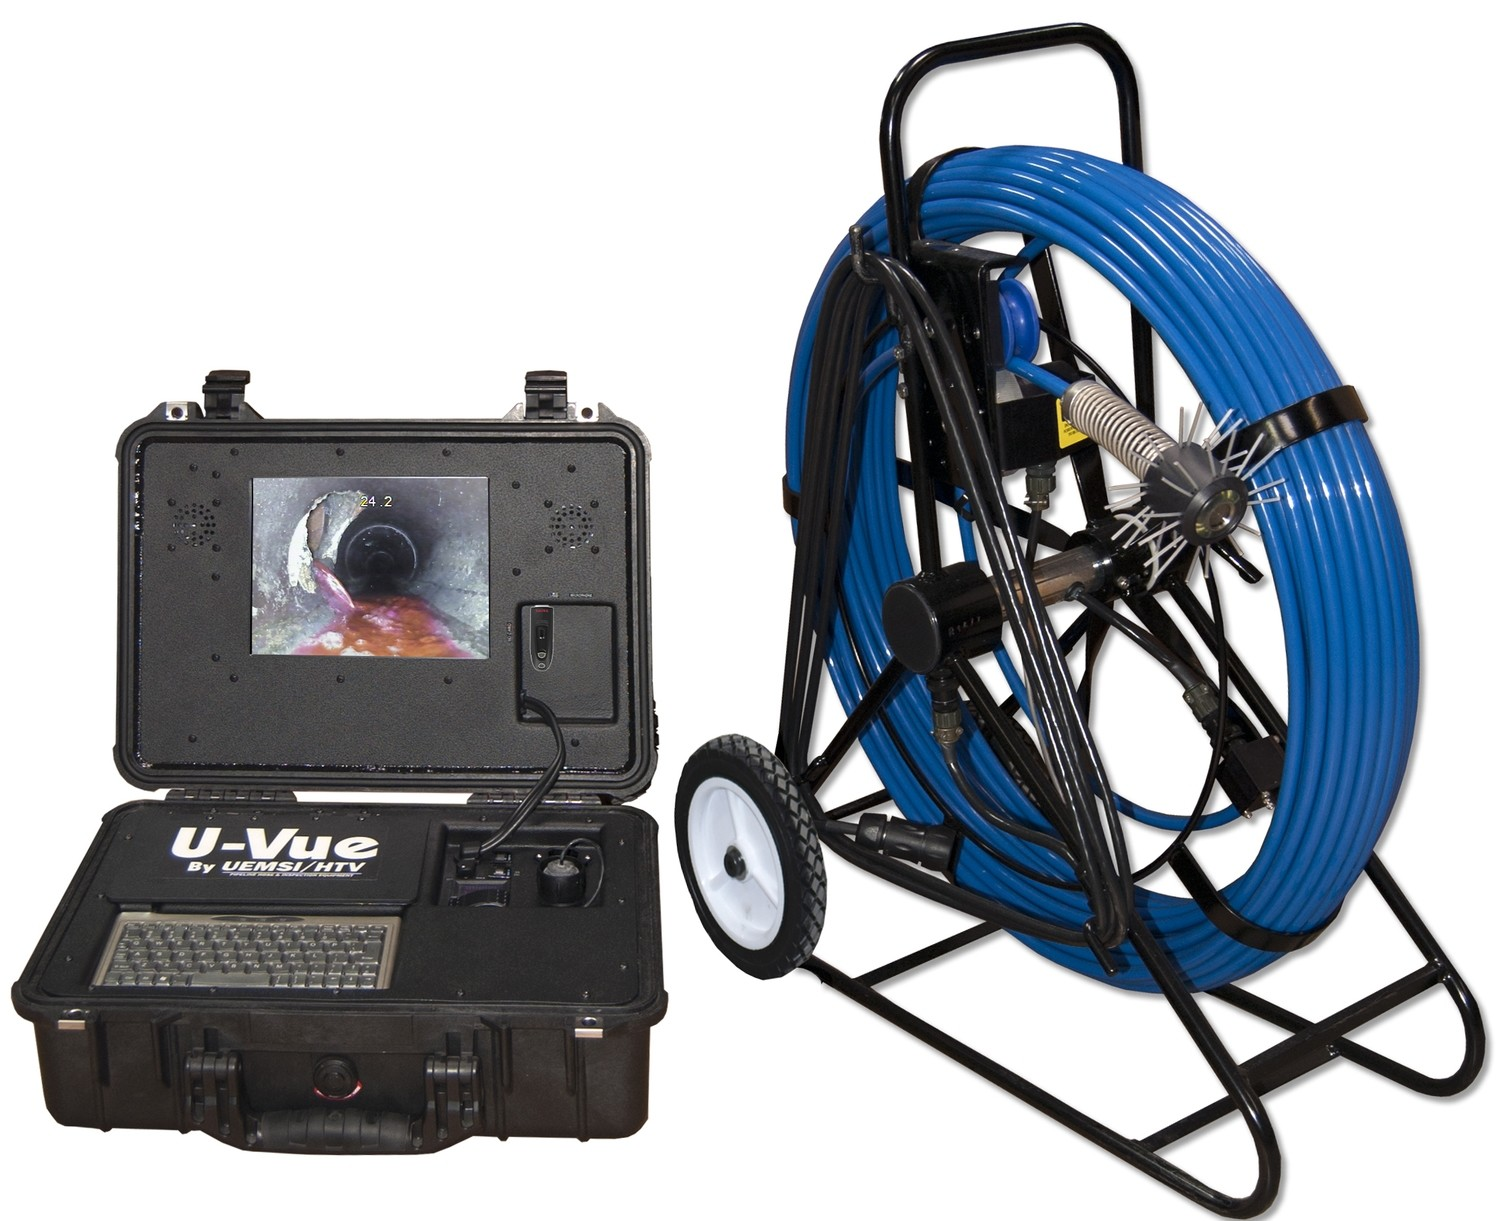 U-Vue™ Color Push Camera Inspection System